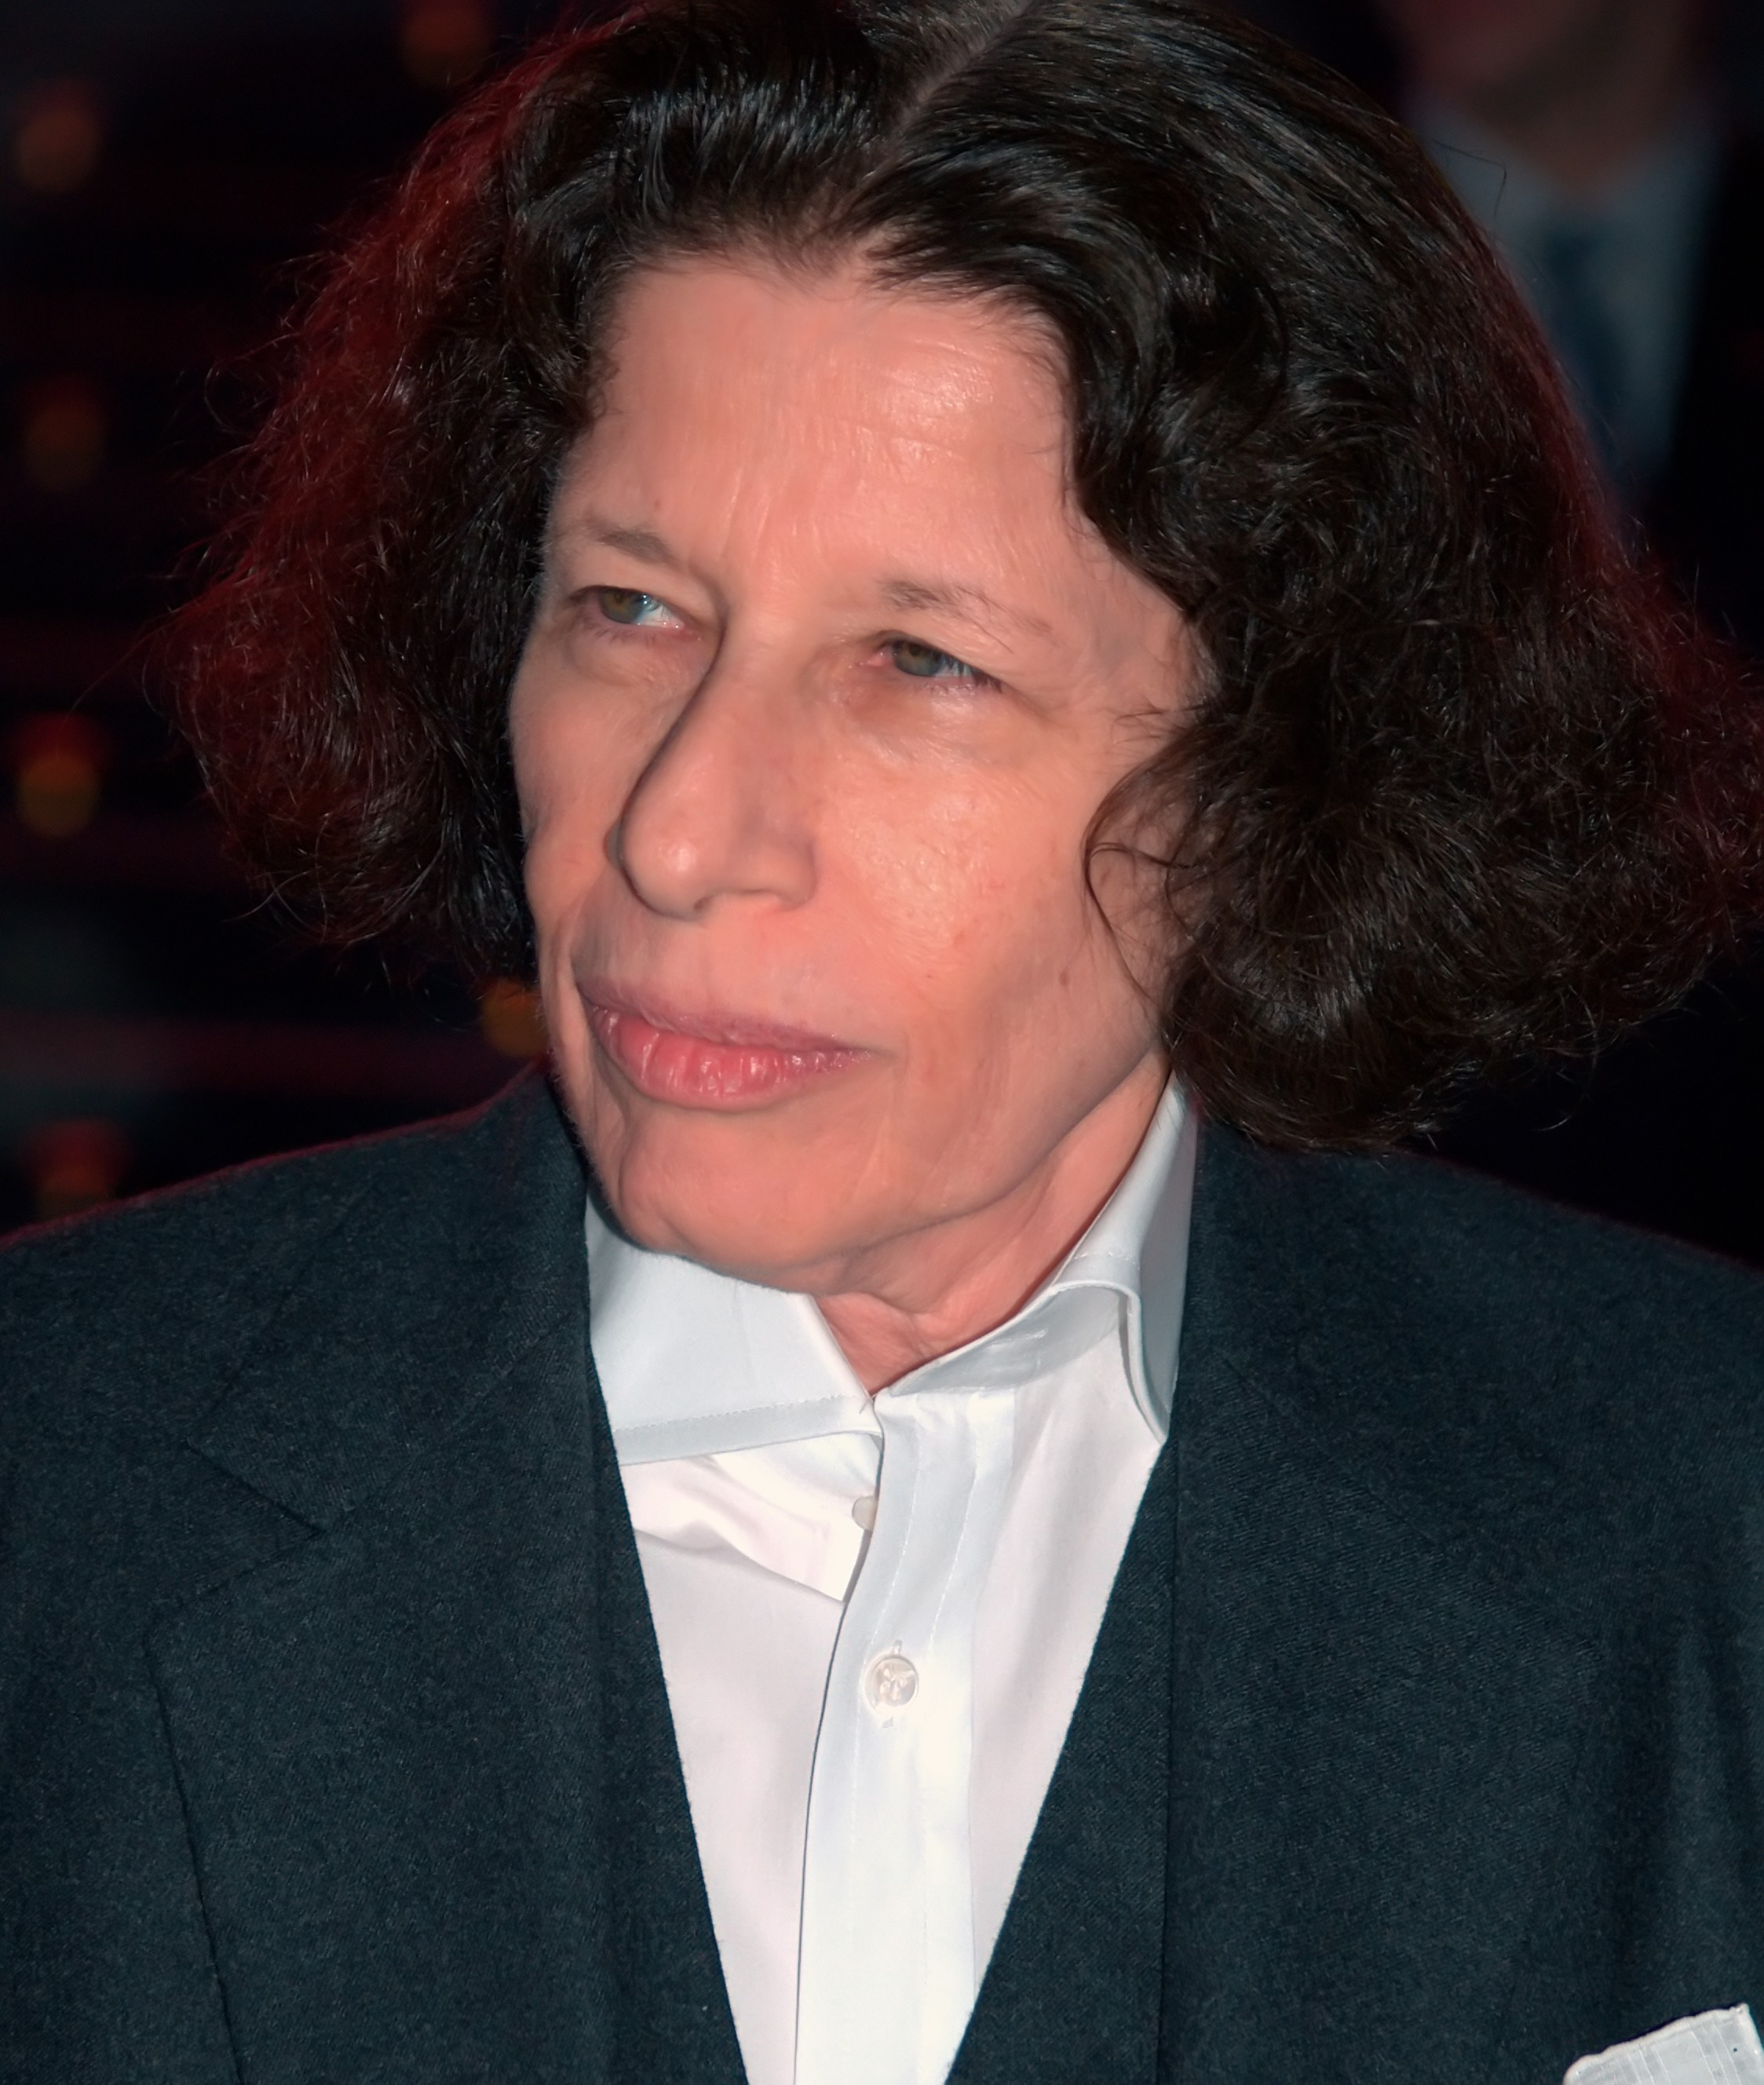 Fran Lebowitz Net Worth